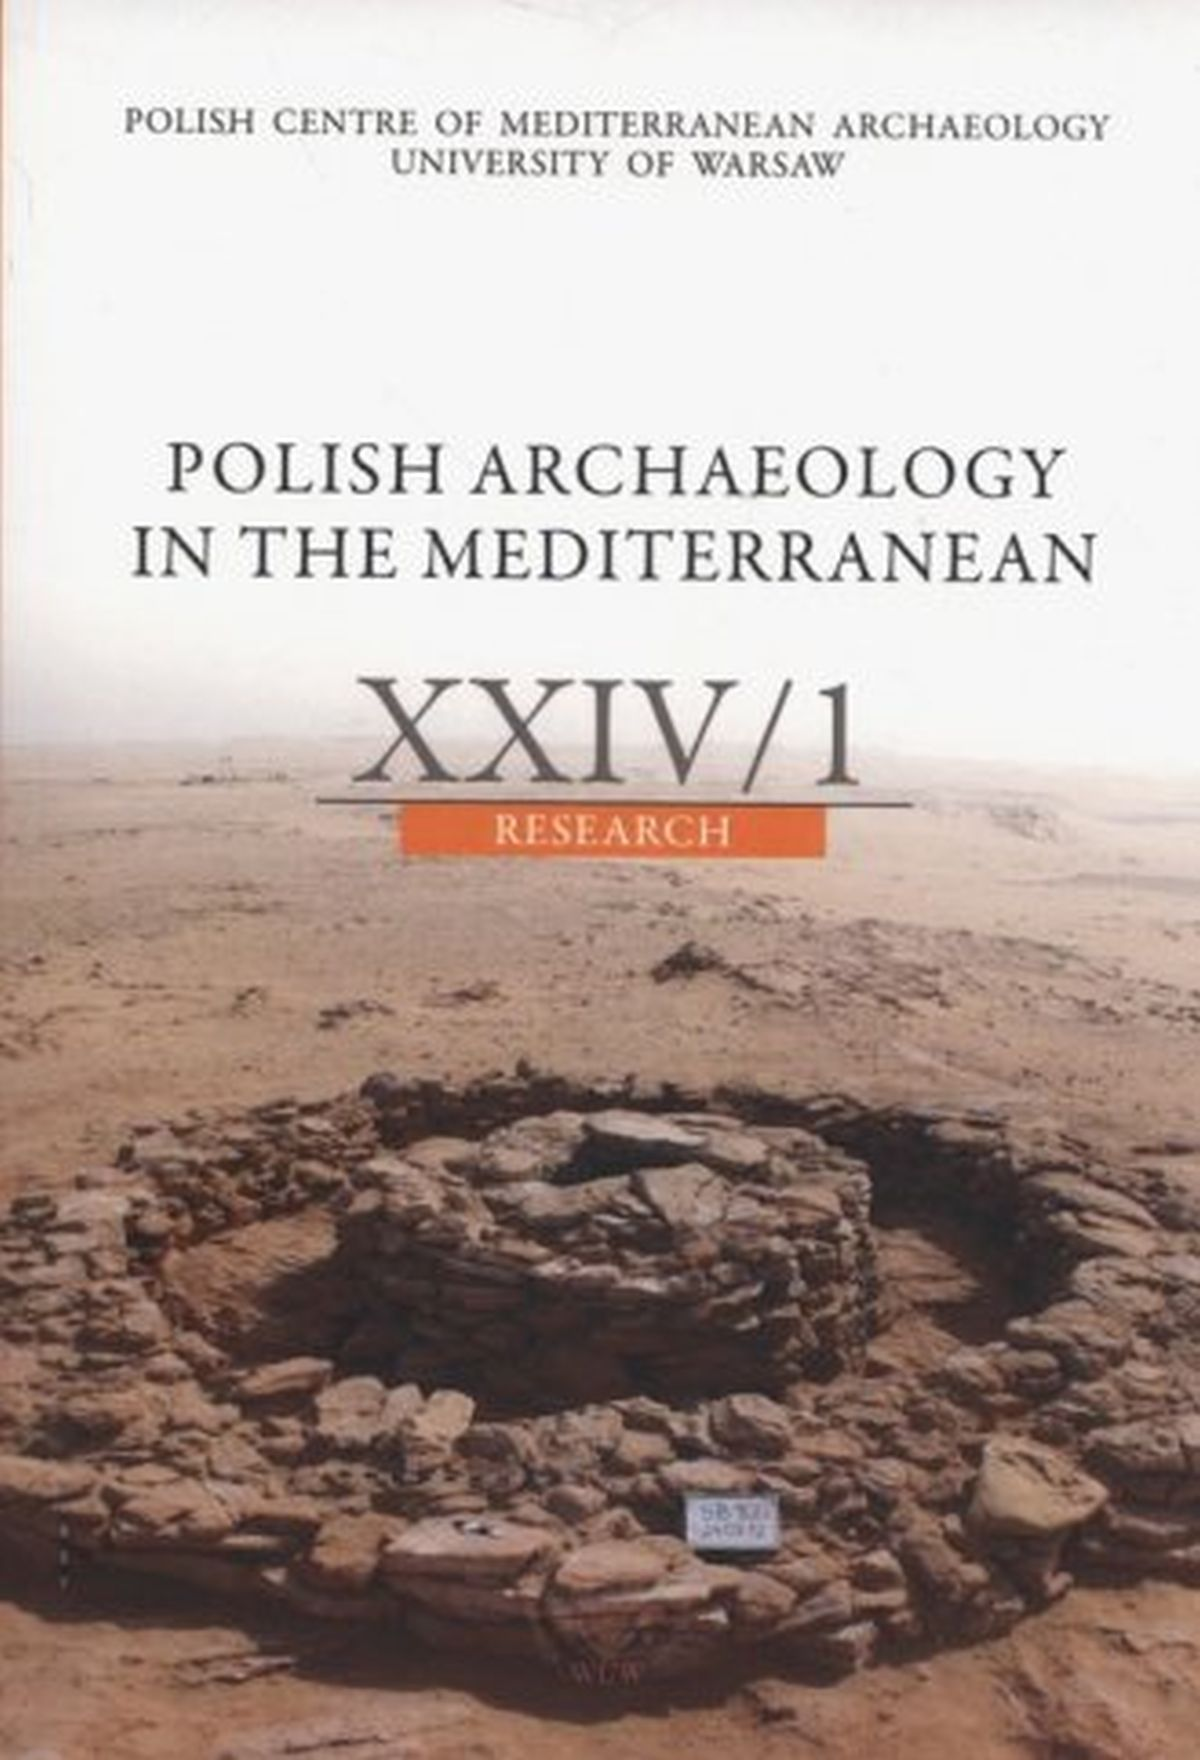 Polish Archaeology in the Mediterranean XXIV 1. Research